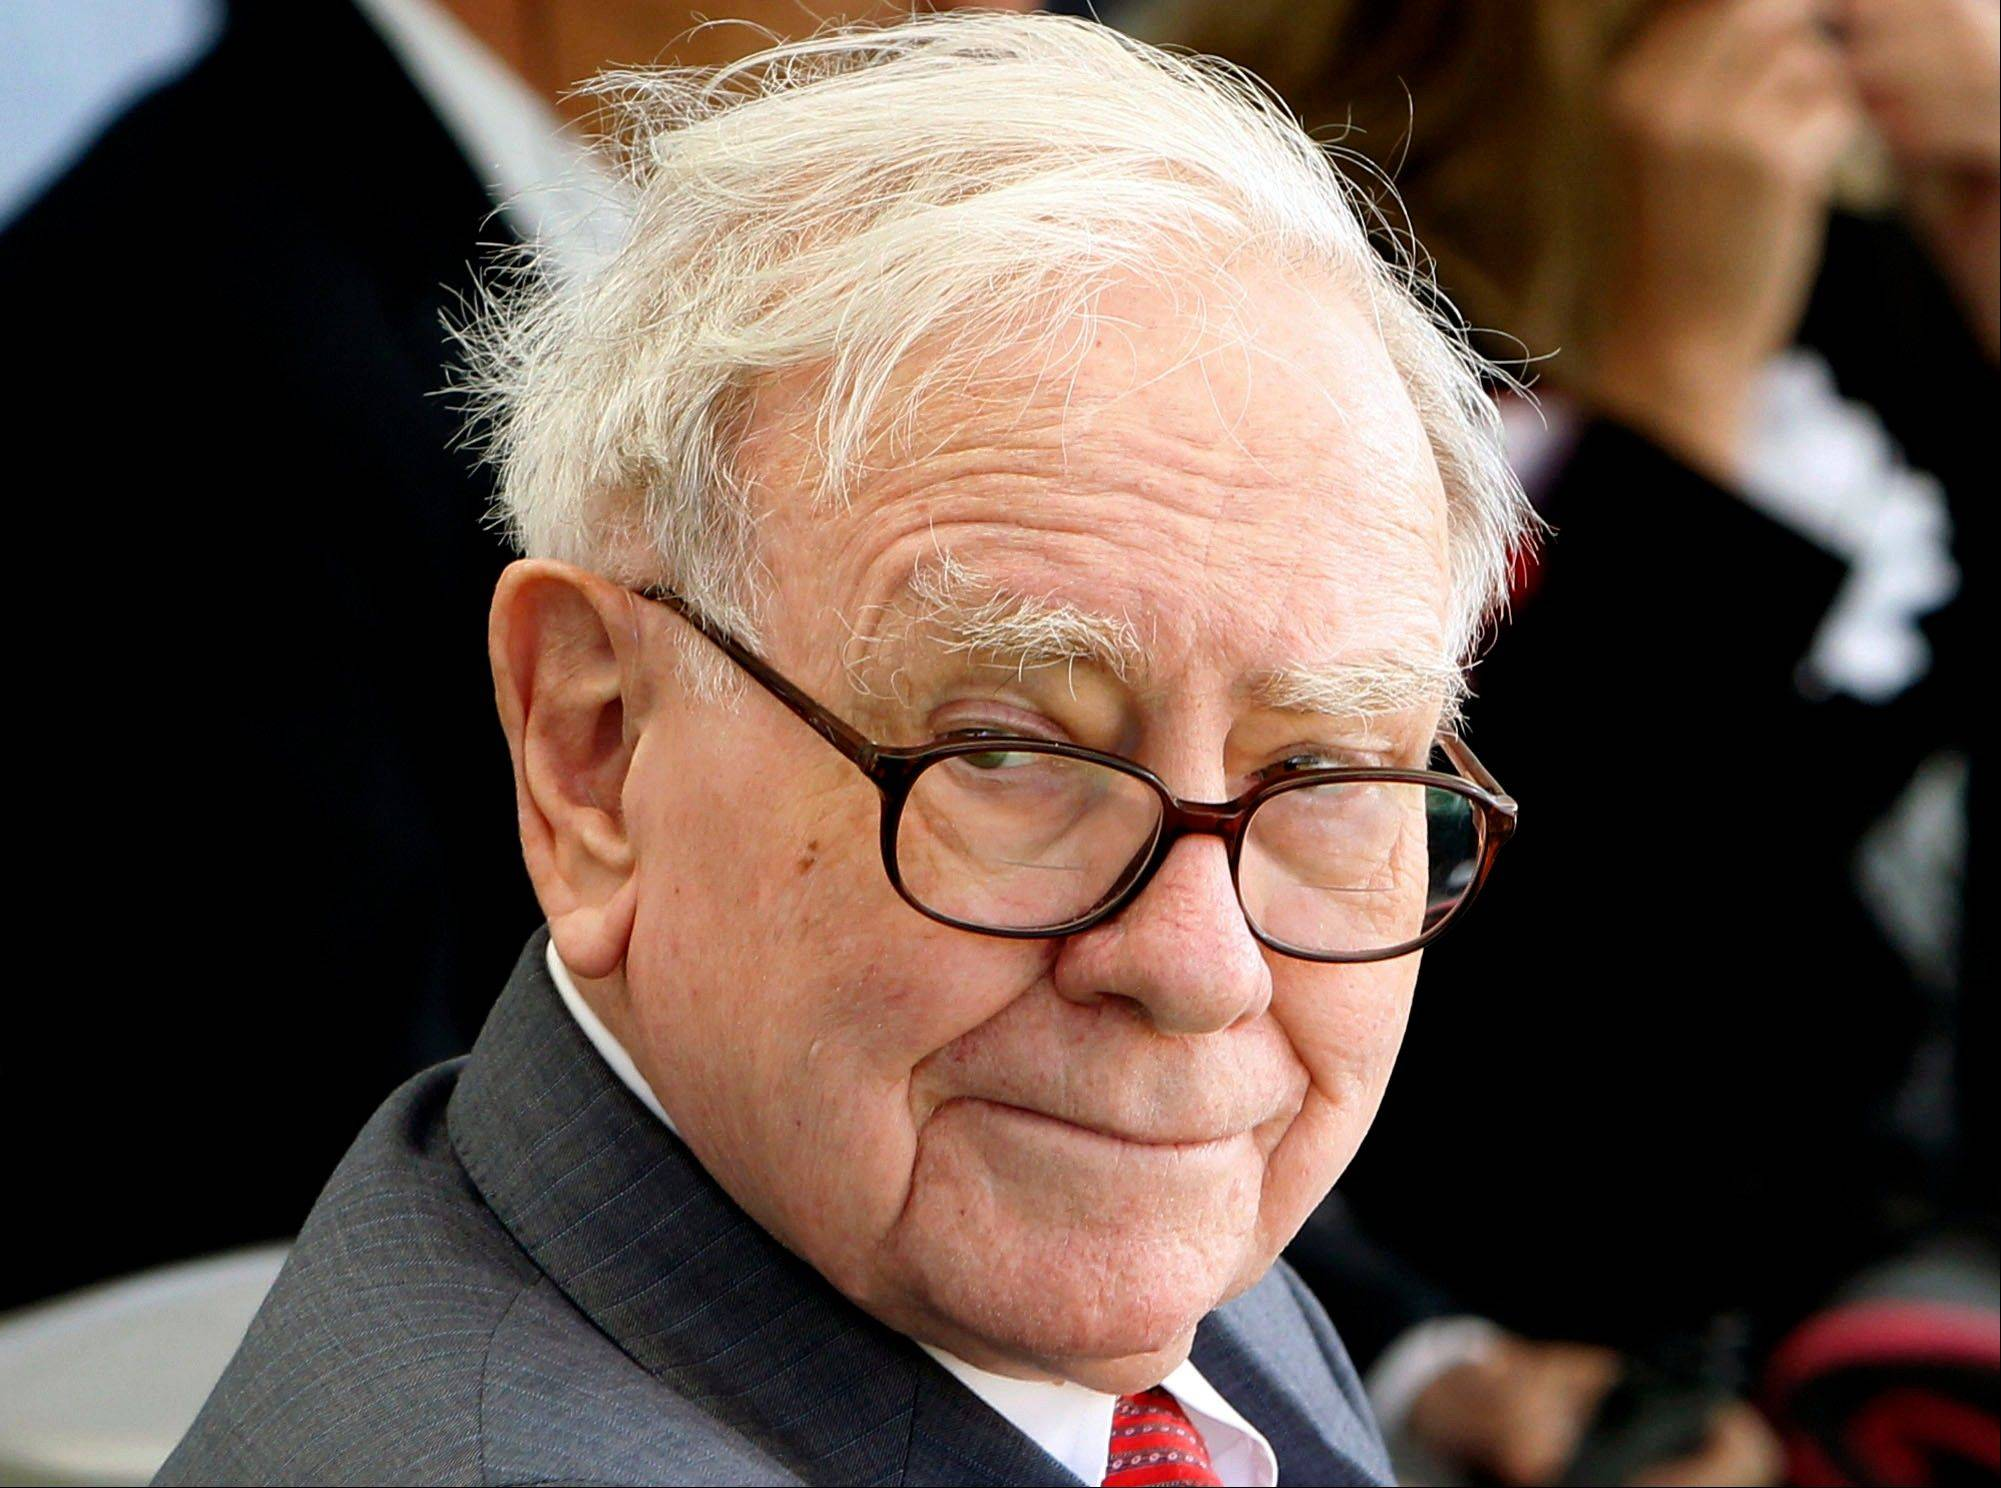 Buffett says allowing U.S. default would be idiocy